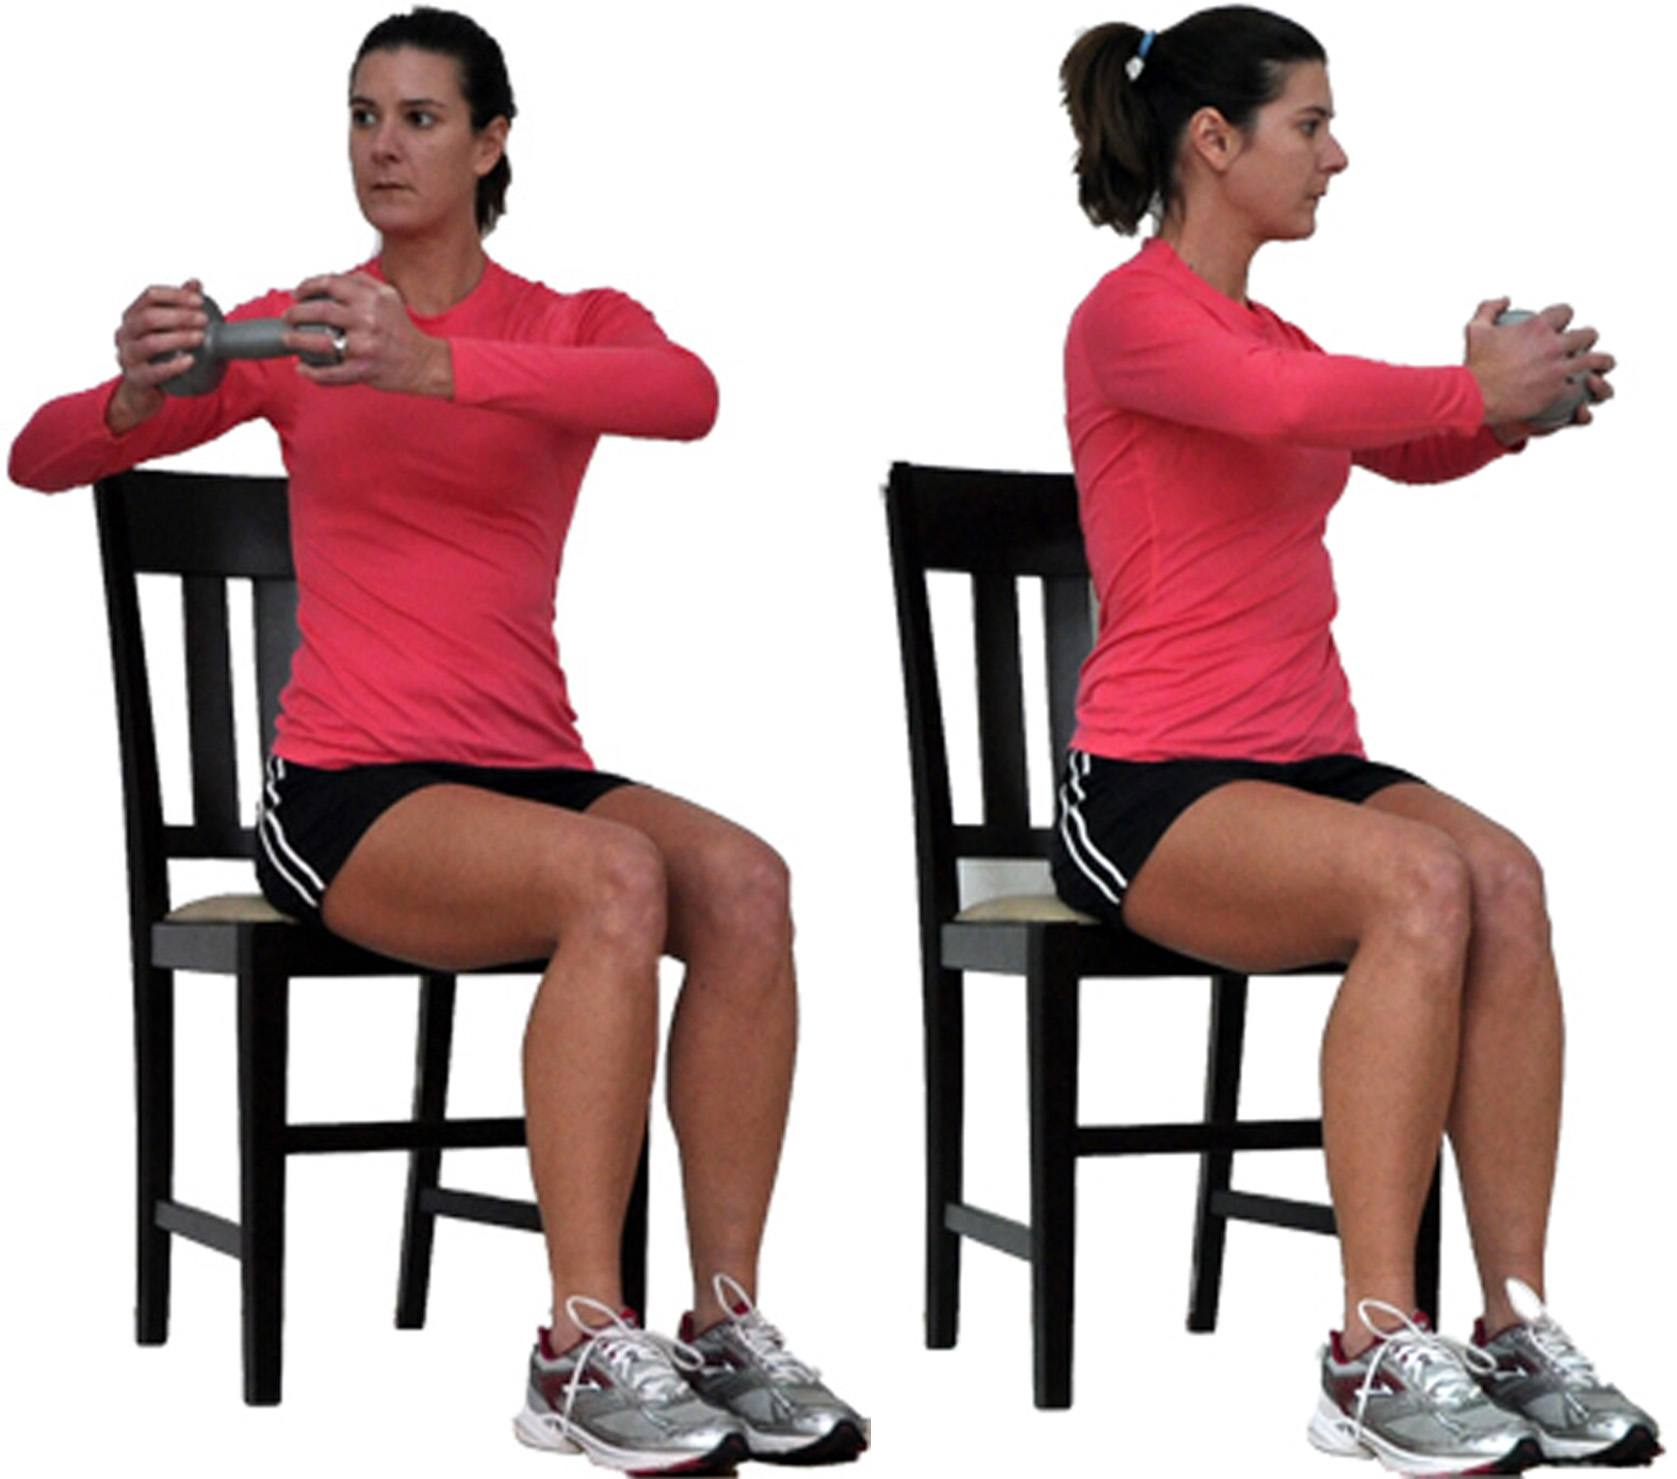 Seated Upper Body Workout From Your Chair